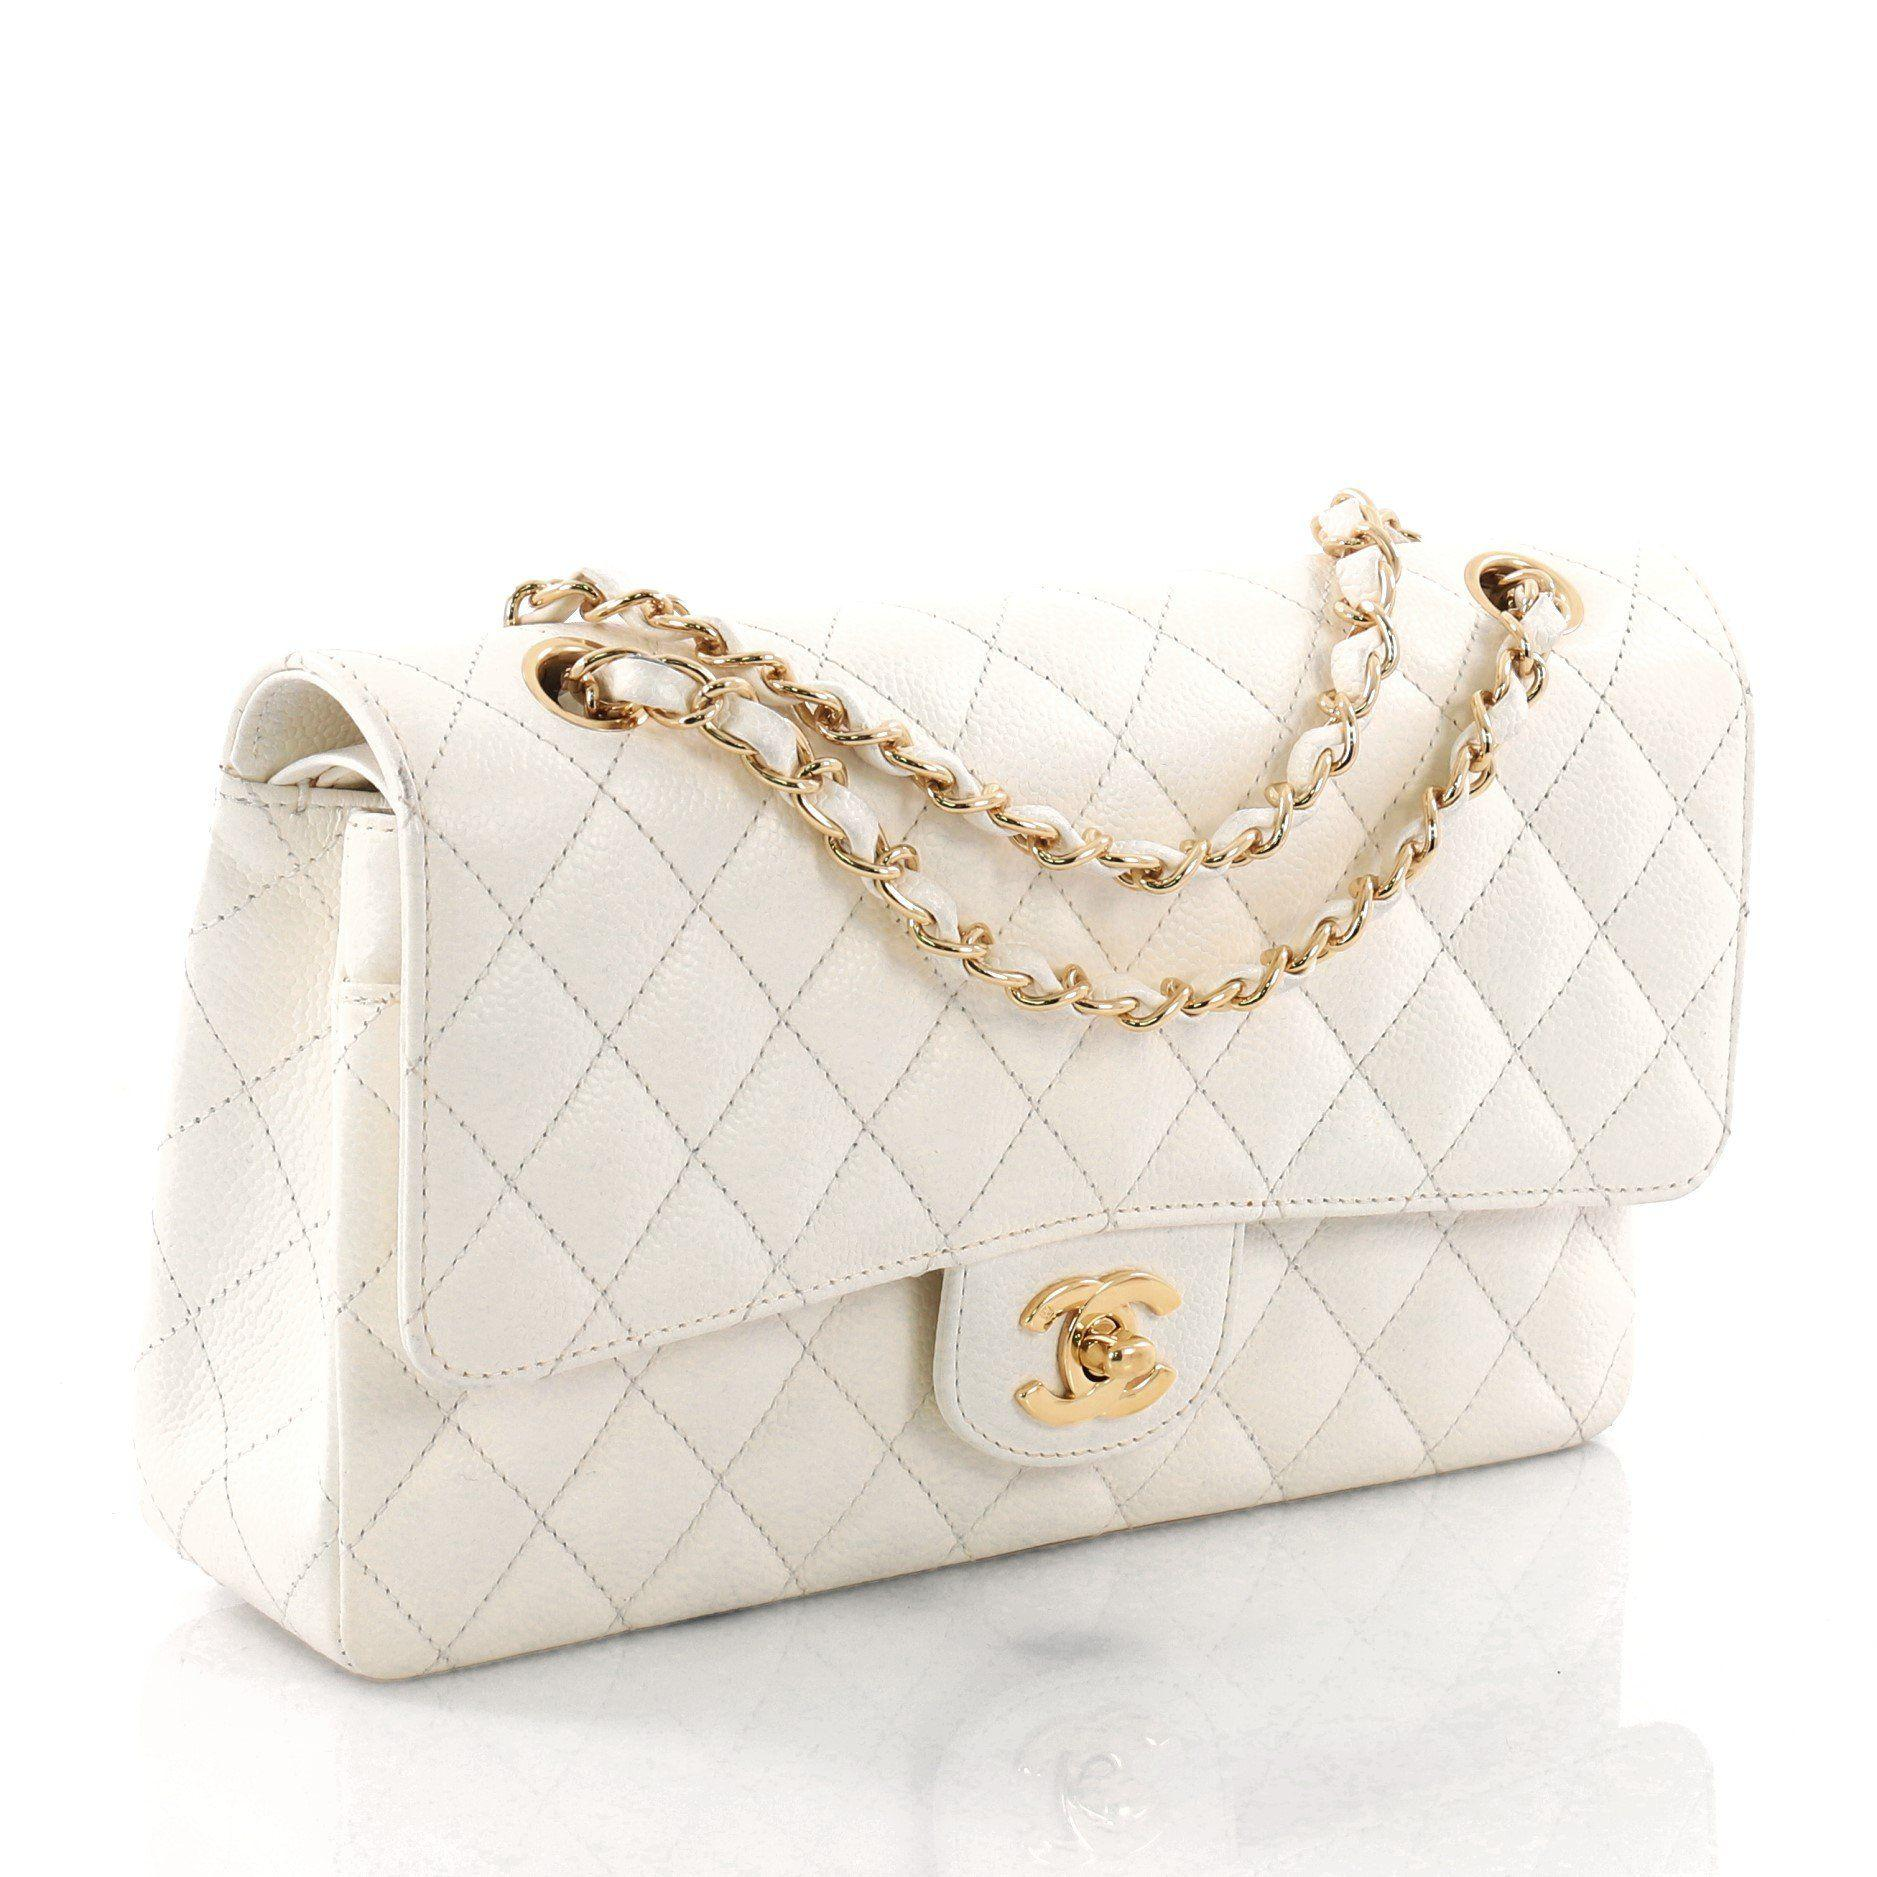 9a1c37de8209 Chanel - Multicolor Pre Owned Vintage Classic Double Flap Bag Quilted  Caviar Medium - Lyst. View fullscreen